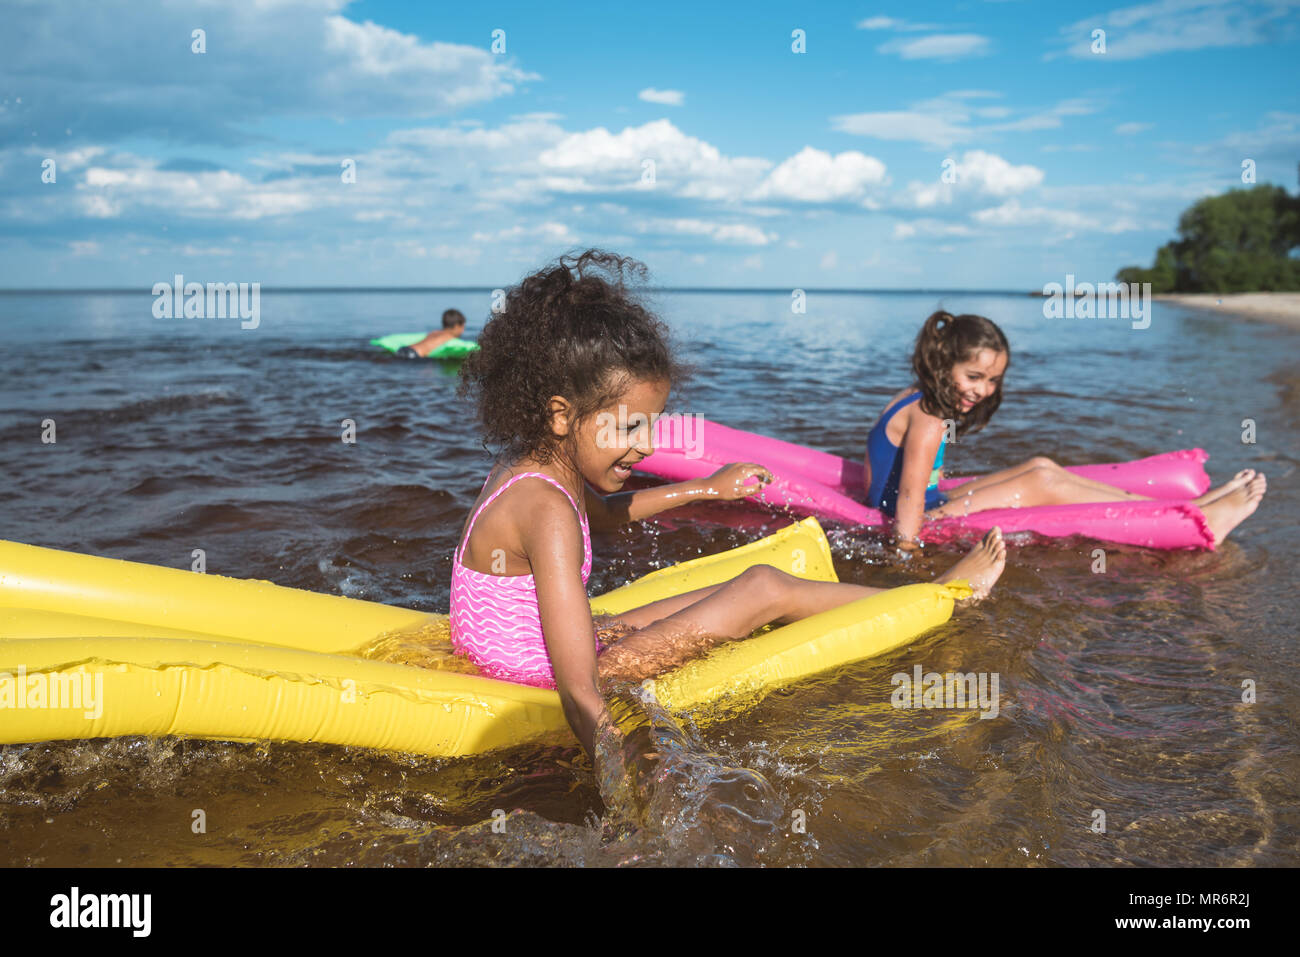 multicultural happy girls swimming together on inflatable mattresses at sea - Stock Image